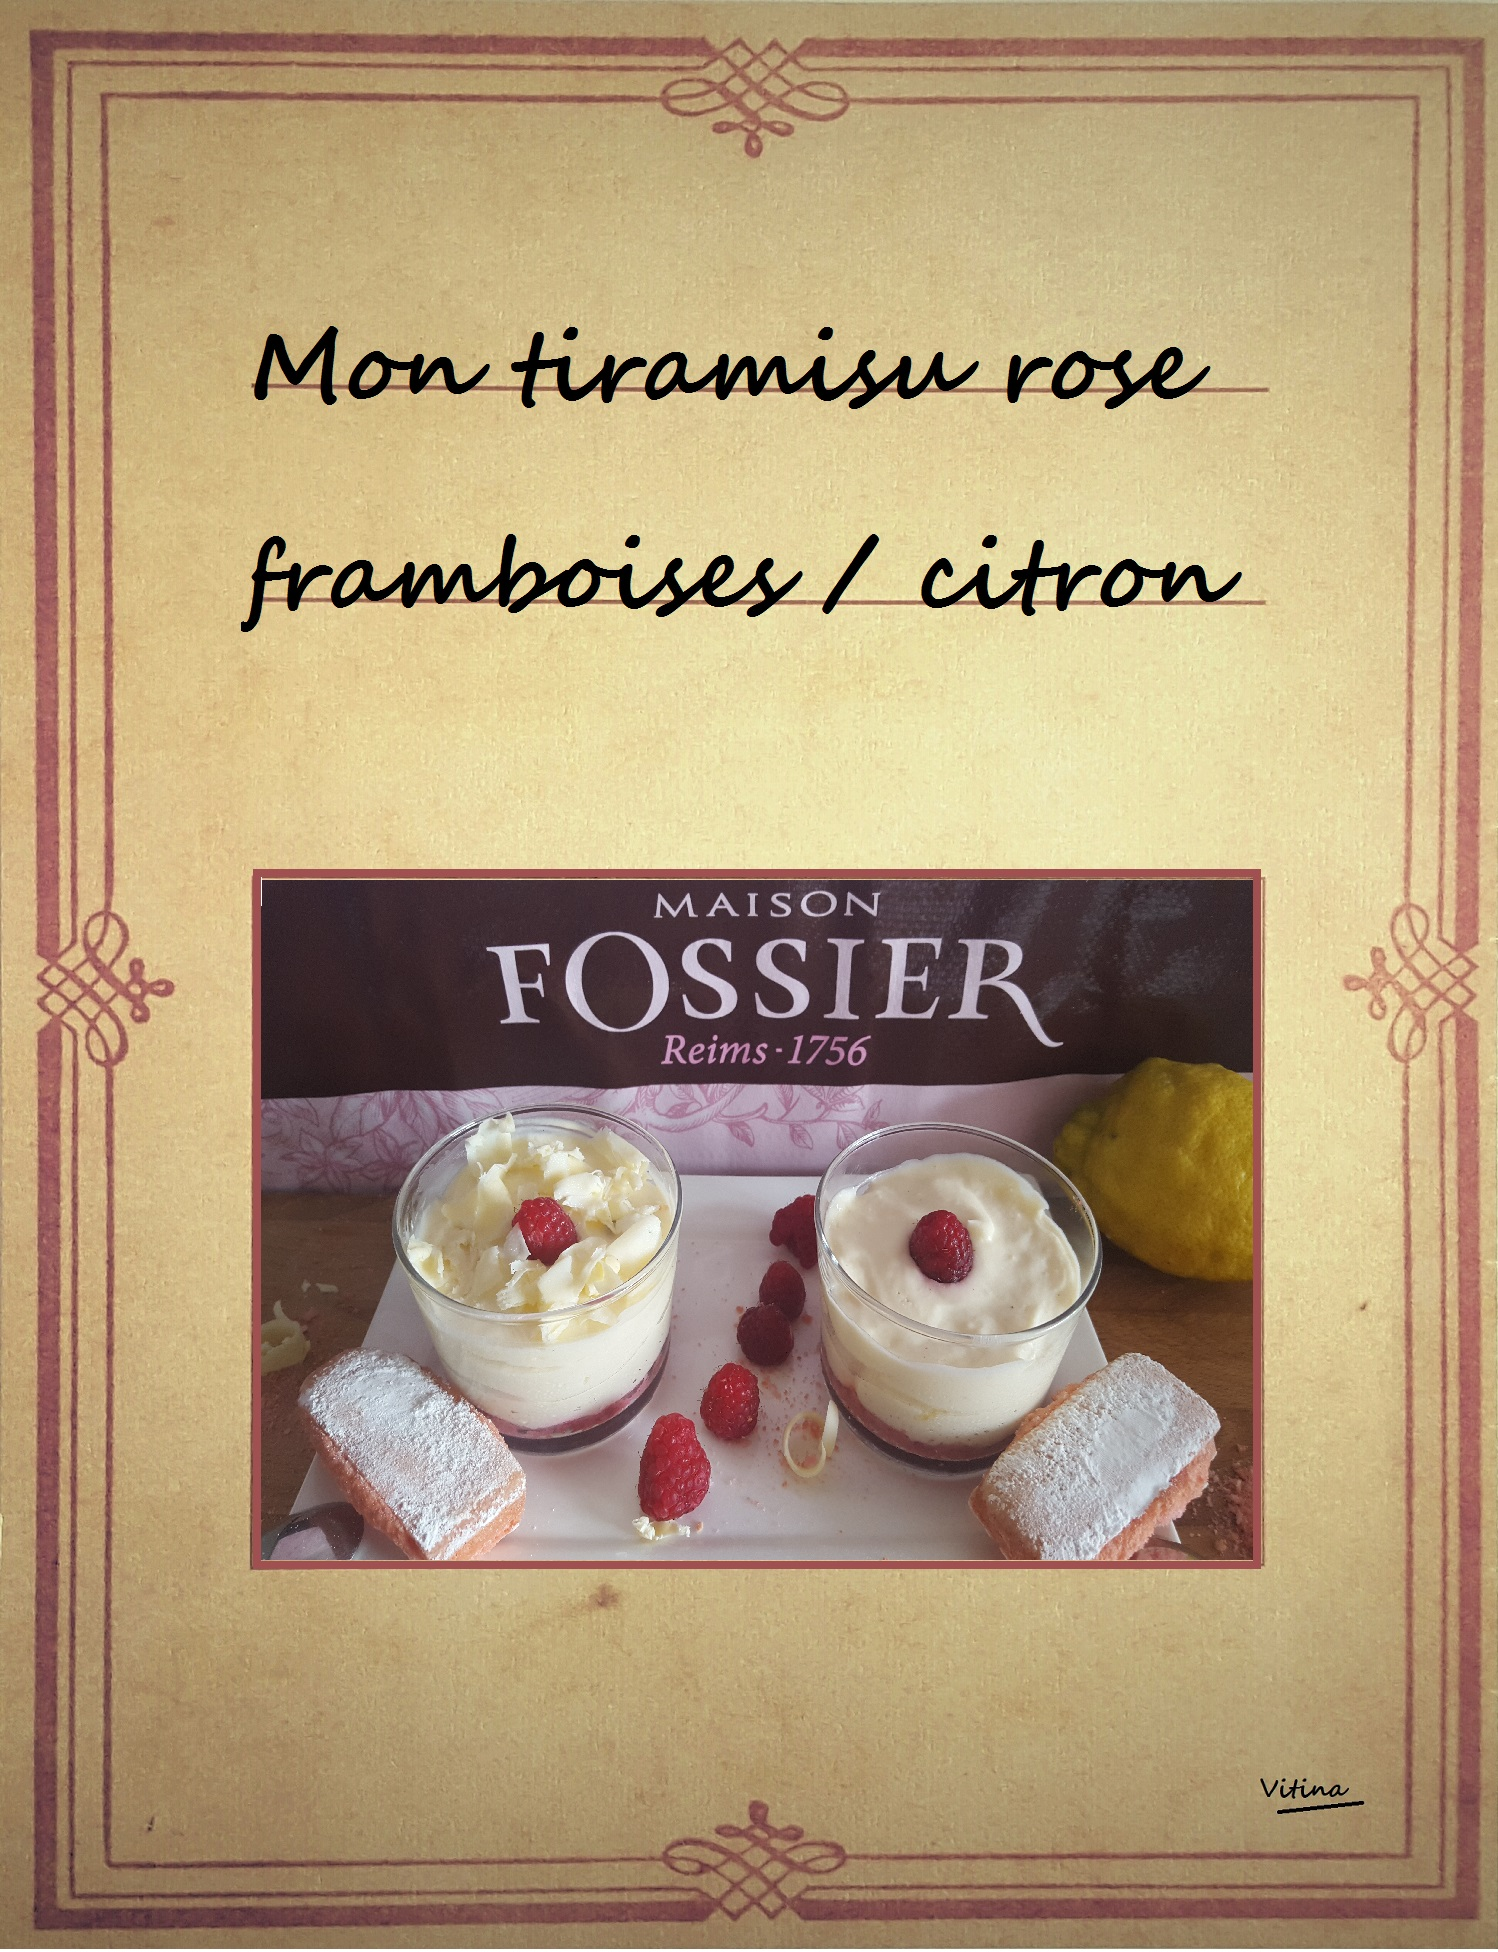 tiramisu au biscuit rose citron et framboises. Black Bedroom Furniture Sets. Home Design Ideas